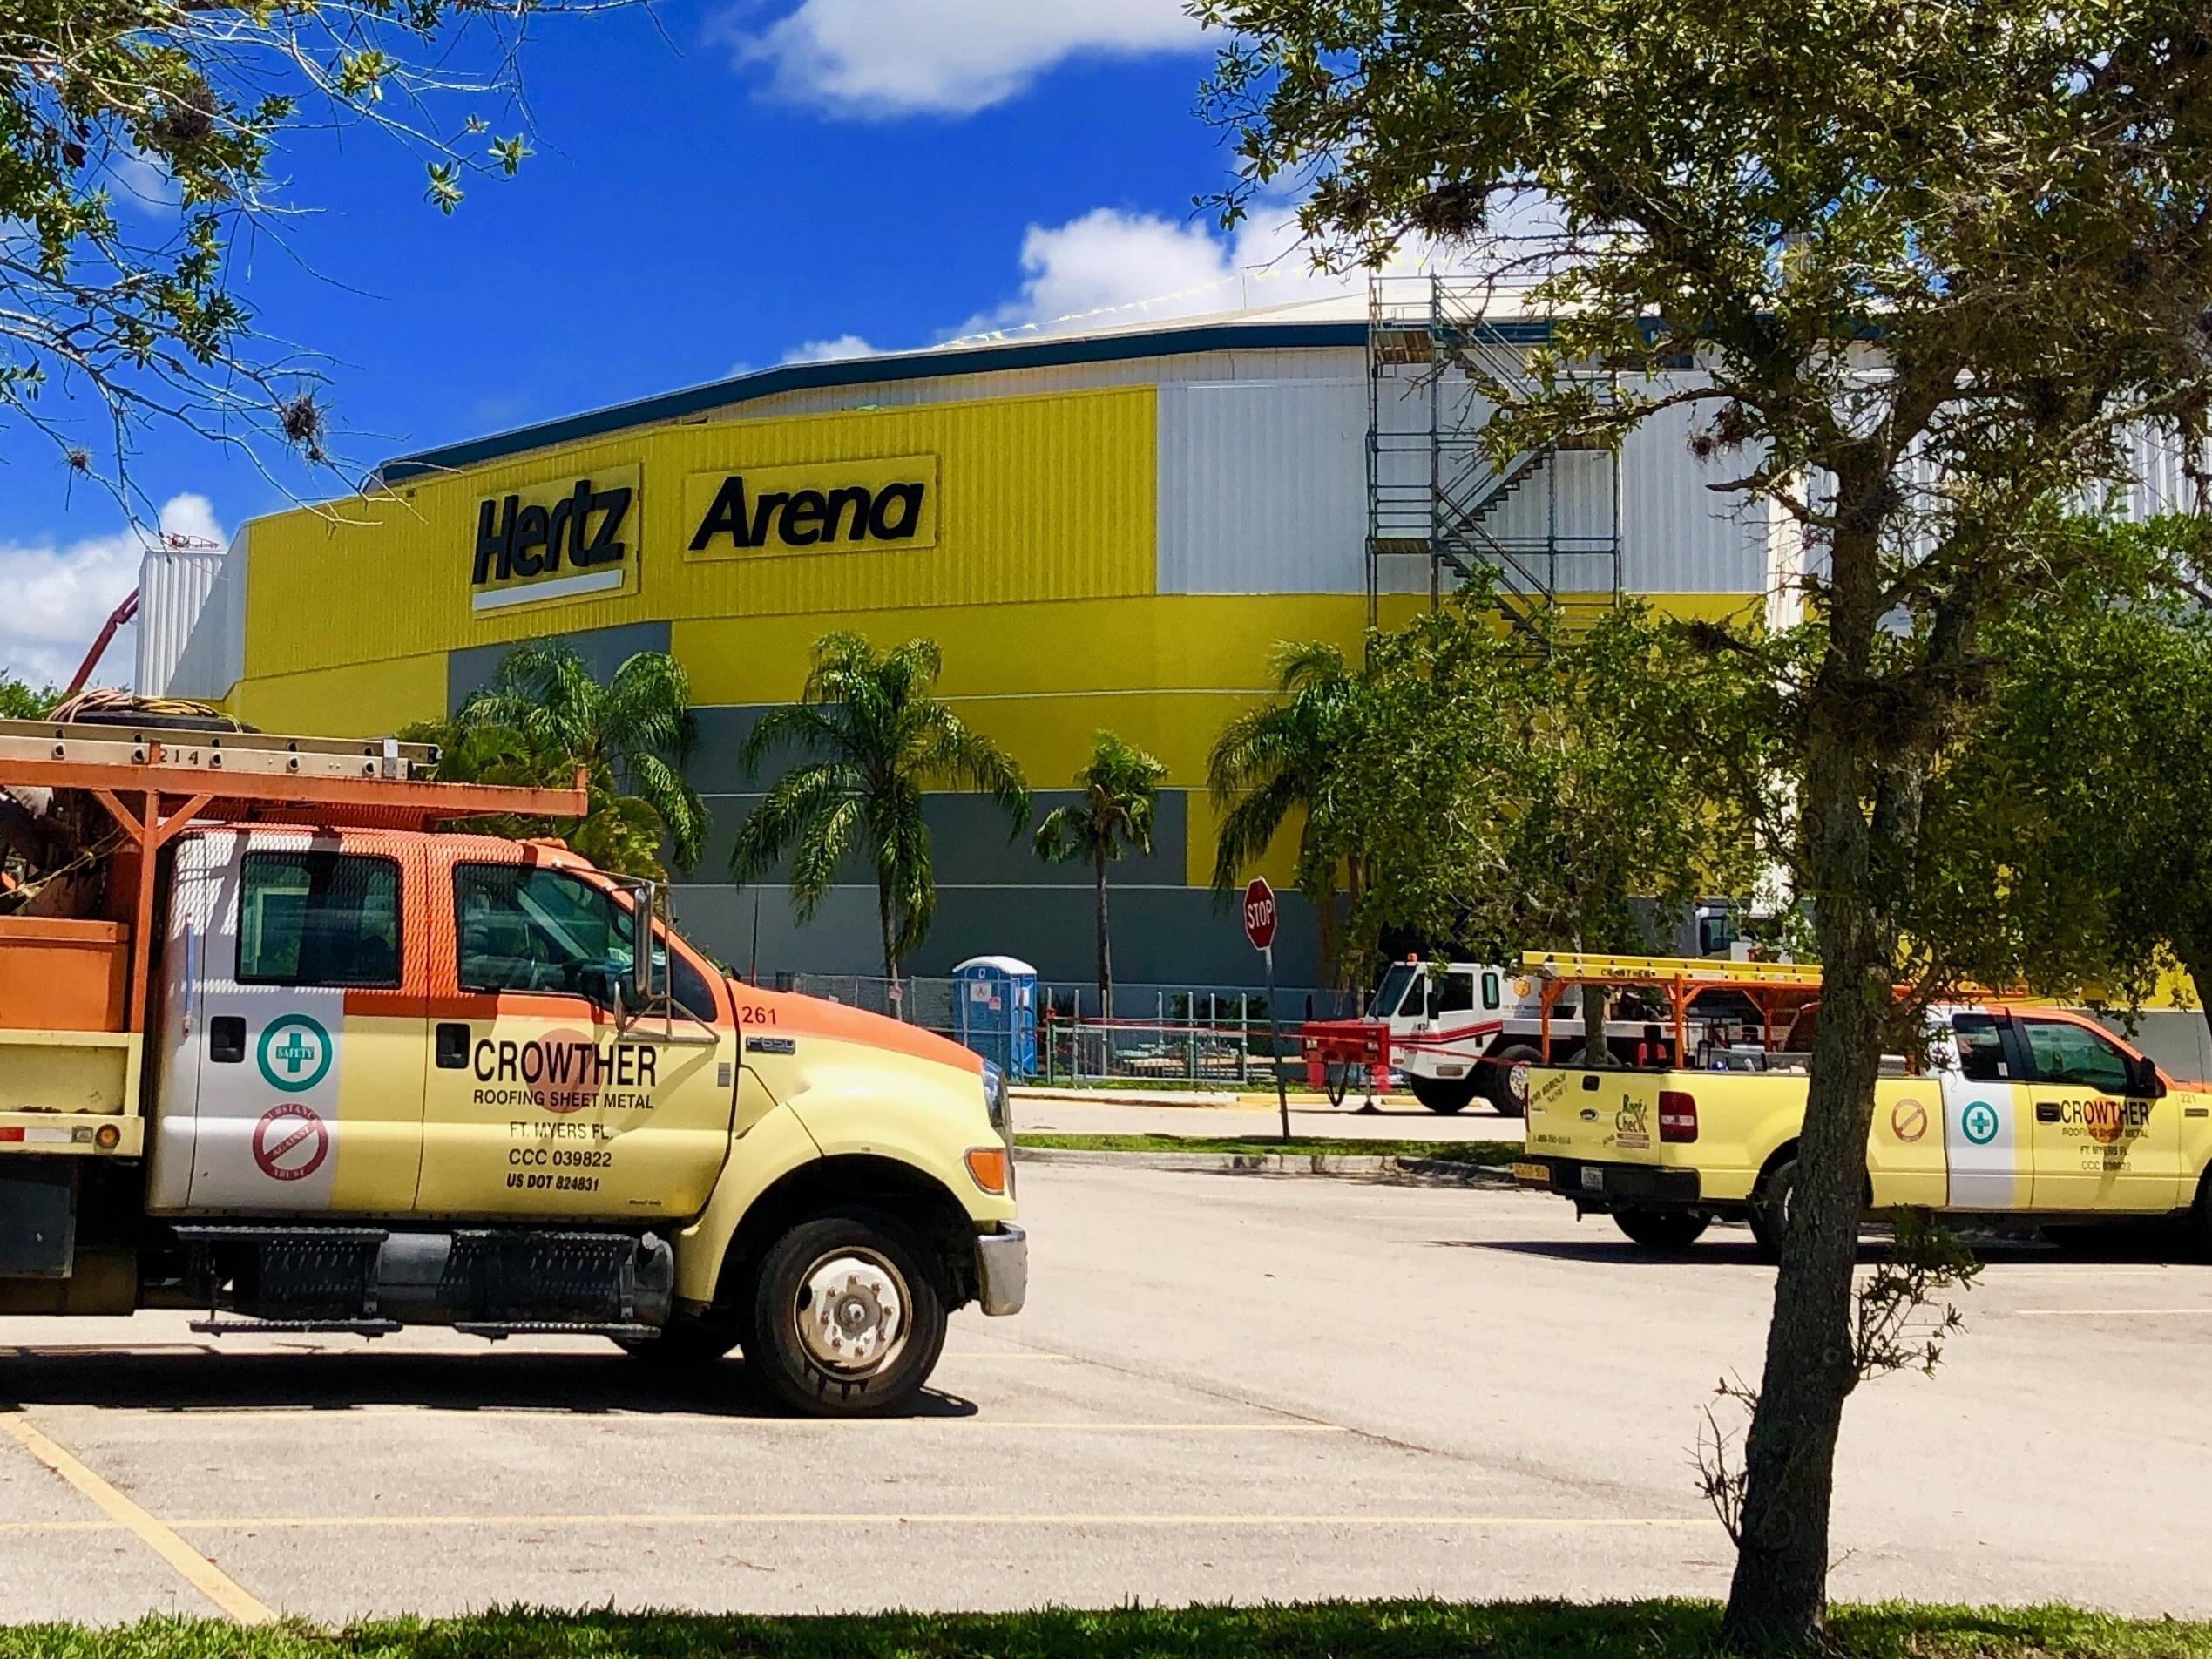 More Trucks at Hertz Arena